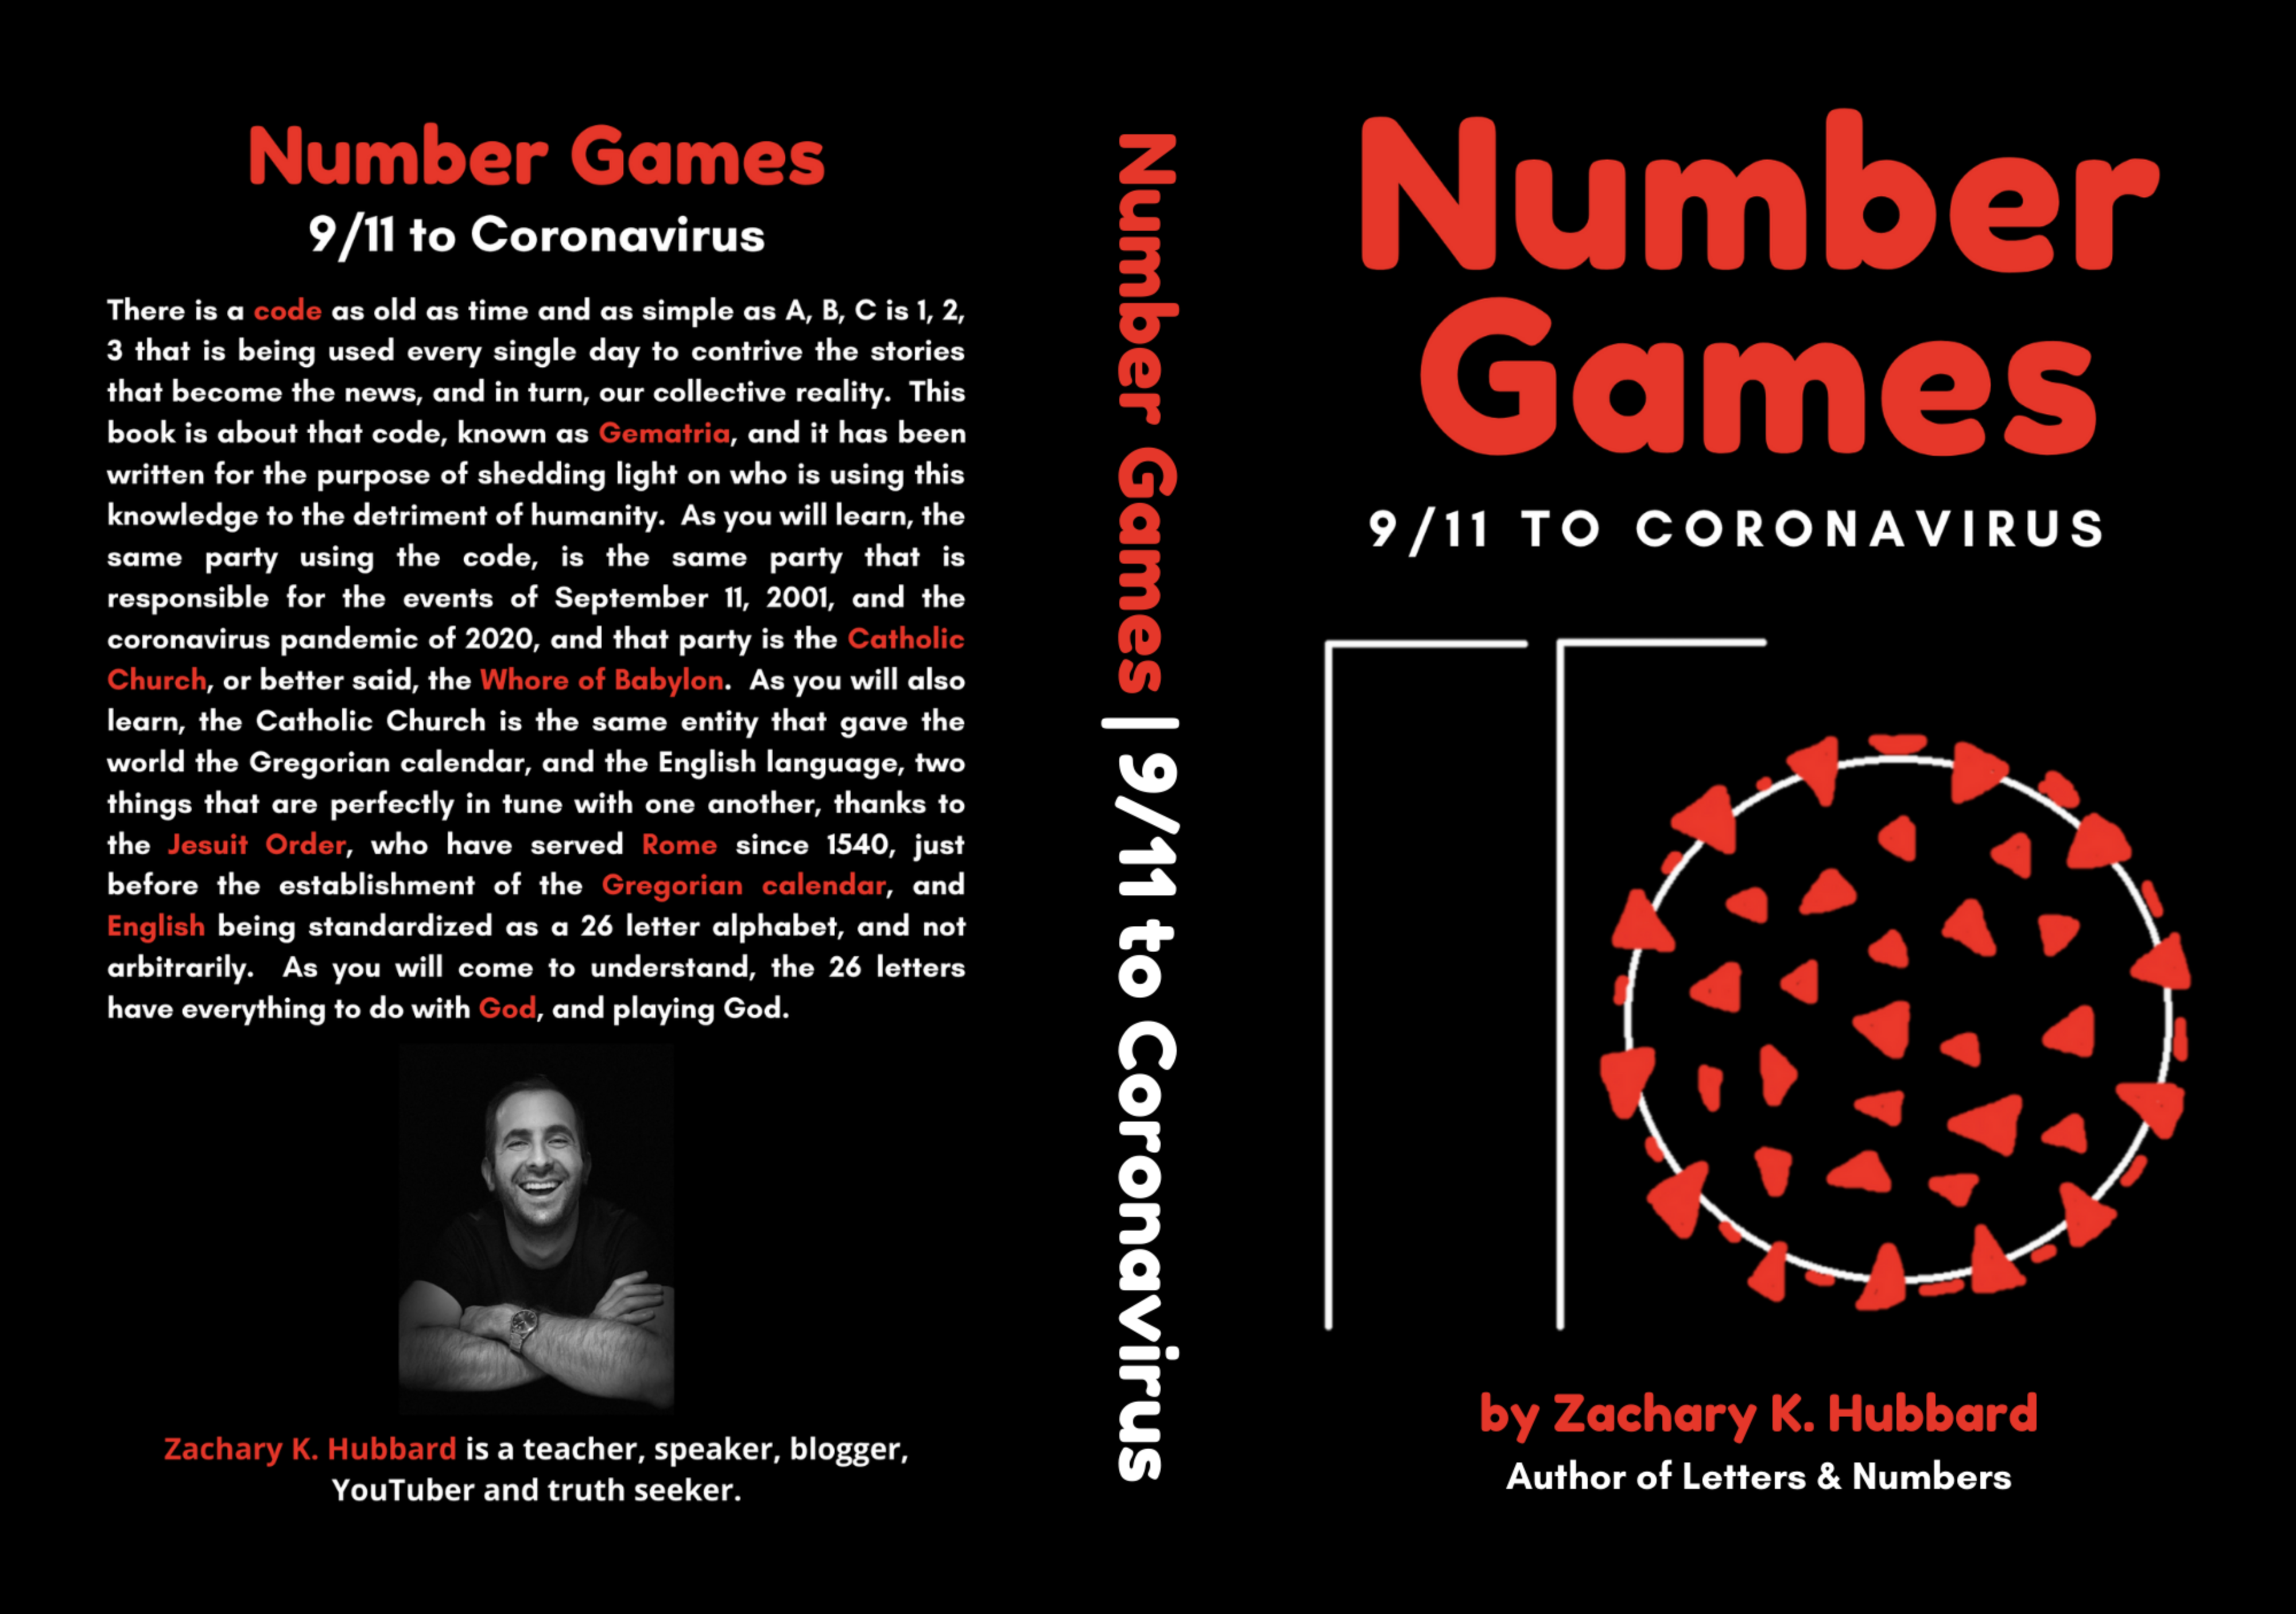 Number Games | 9/11 to Coronavirus